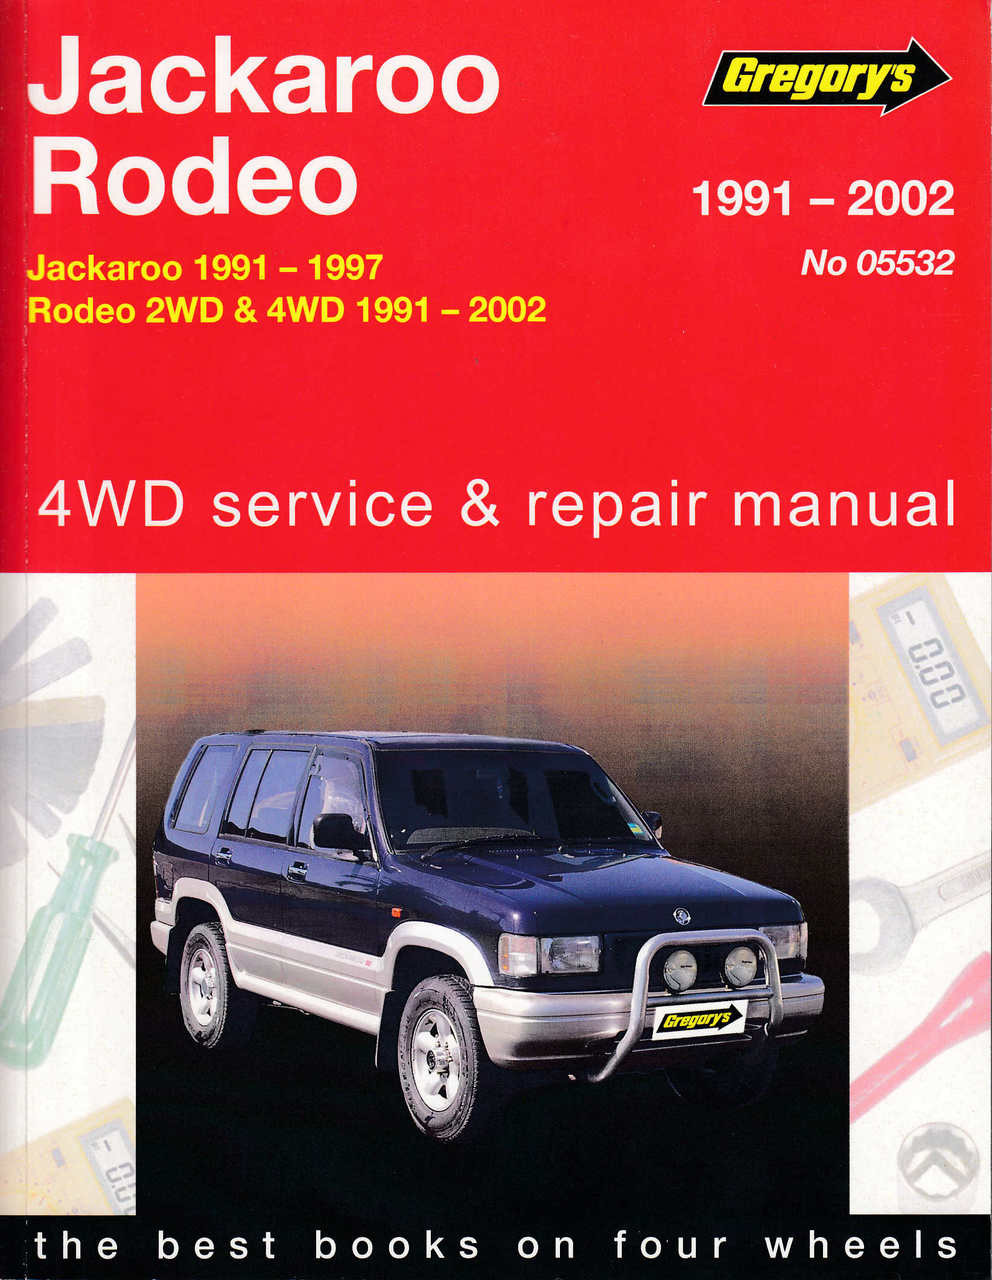 holden jackaroo and holden rodeo 1991 2002 workshop manual rh  automotobookshop com au 1997 Holden Rodeo Holden Rodeo Under Bonnet